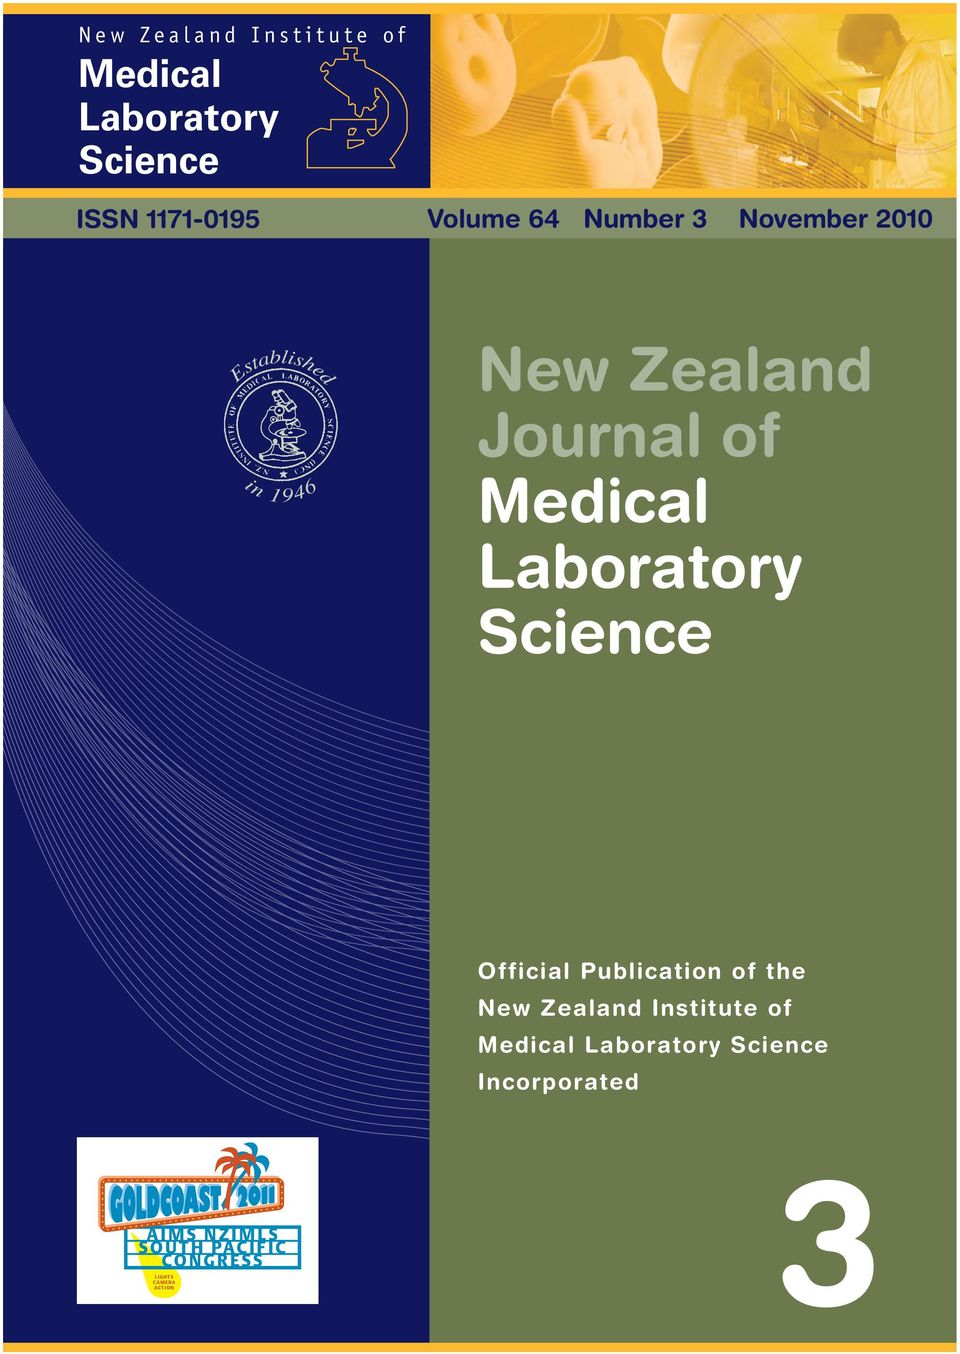 Laboratory Science Official Publication of the New Zealand Institute of Medical